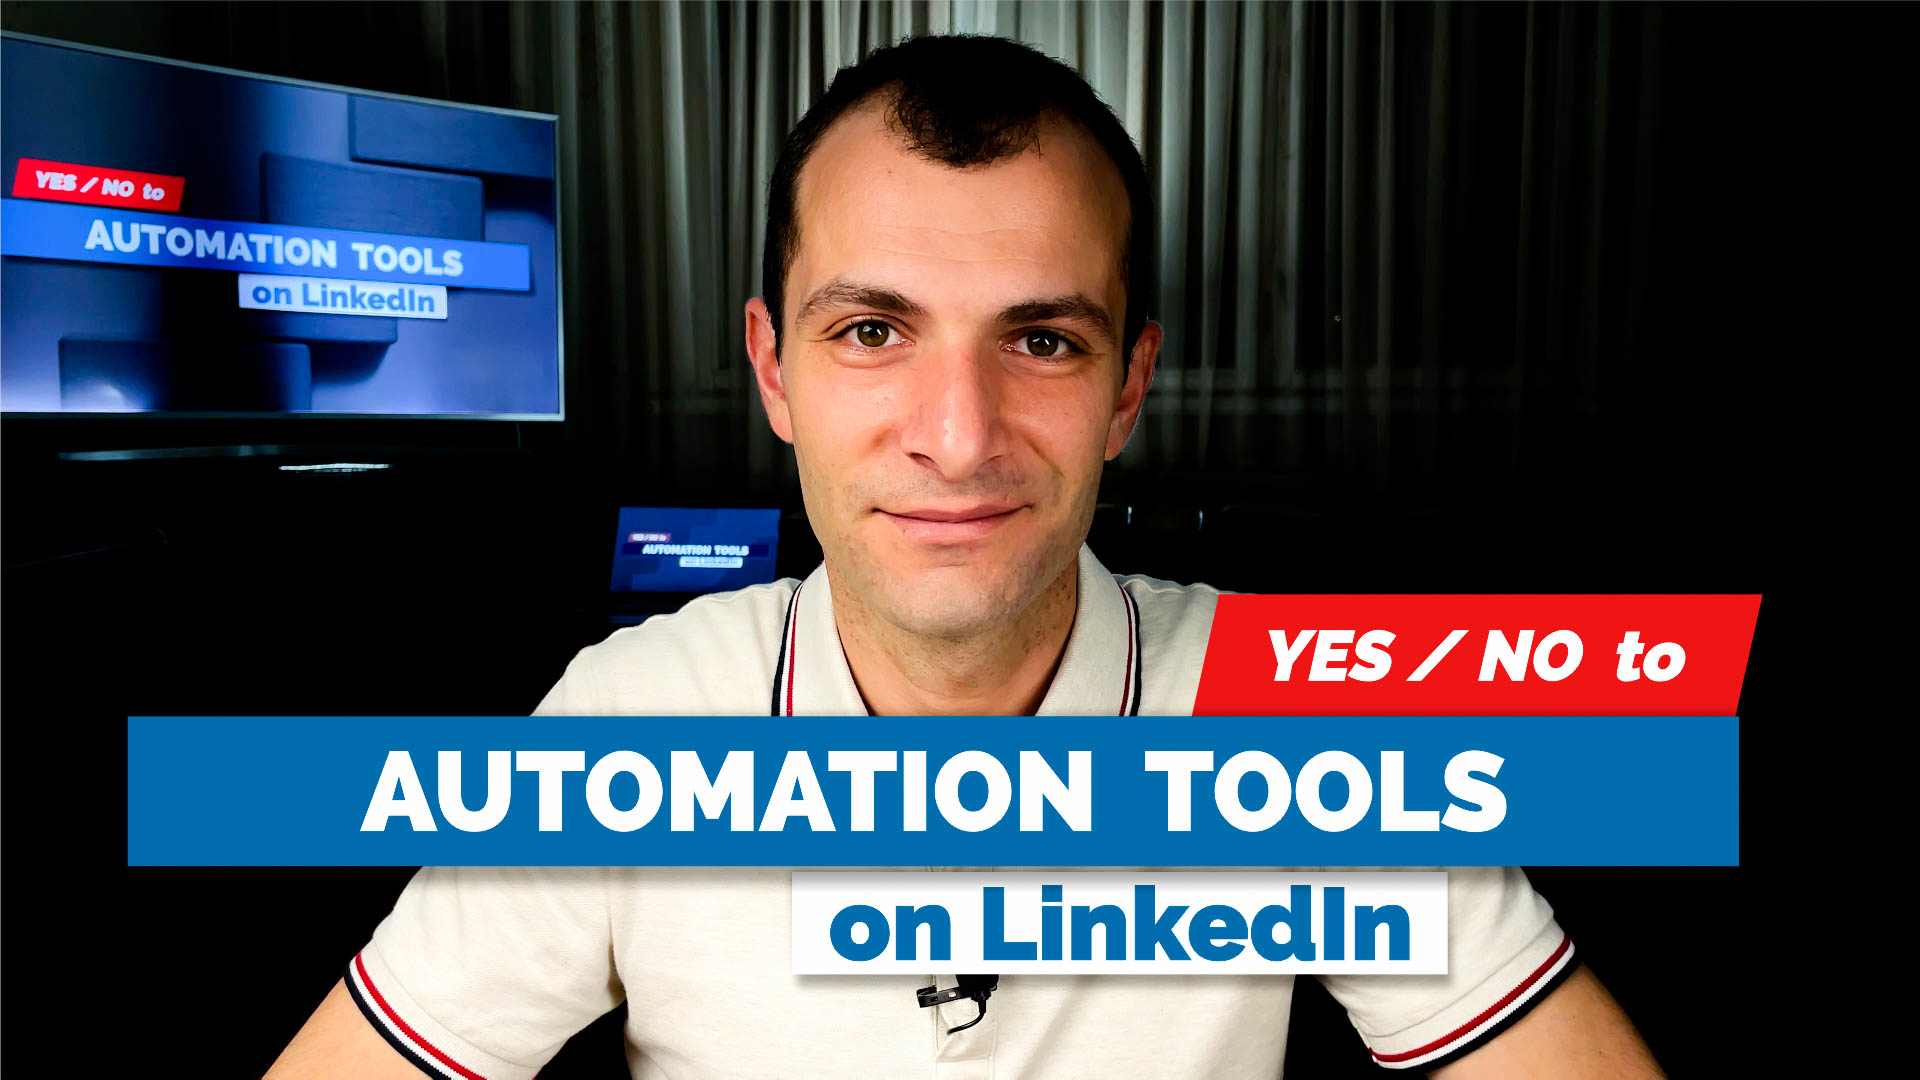 LinkedIn Automation Tools: Yes or No?